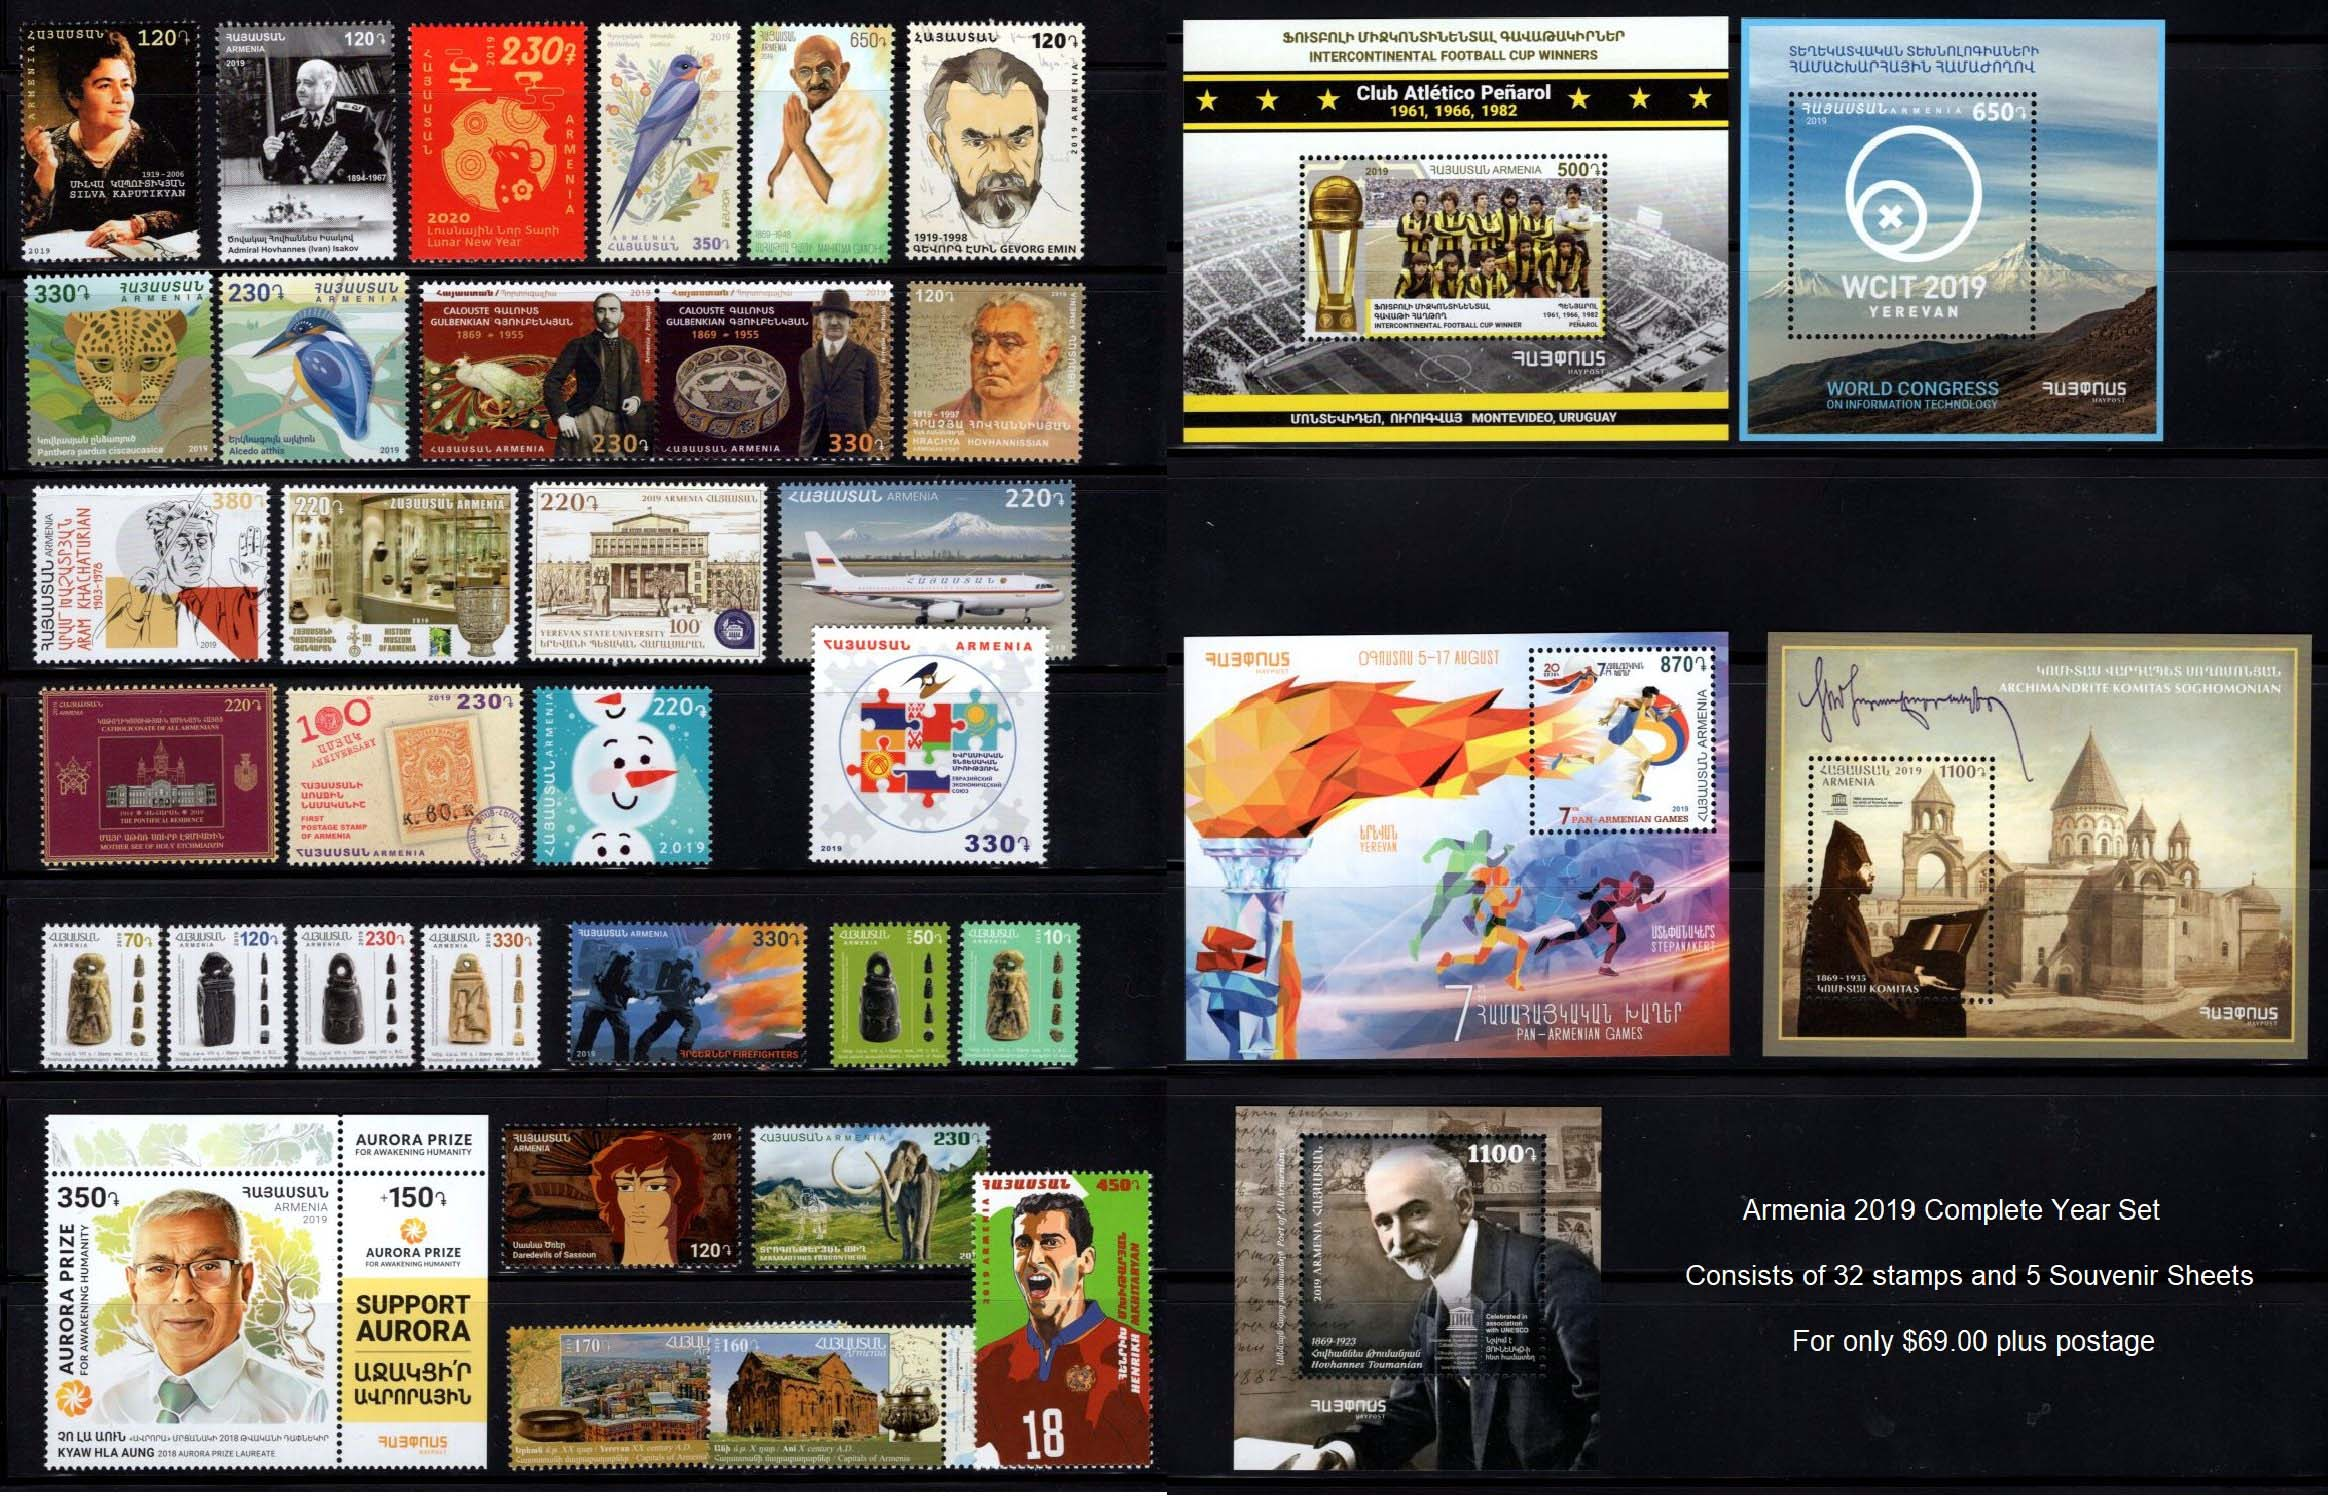 "<font =1-891>Armenia 2019 Complete Year Set.  A total of 32 stamps and 5 Souvenir Sheets  <a href=""/images/Armenia-2019C-YearSet.jpg"">   <font color=green><b><br>View the image</b></a></font>"